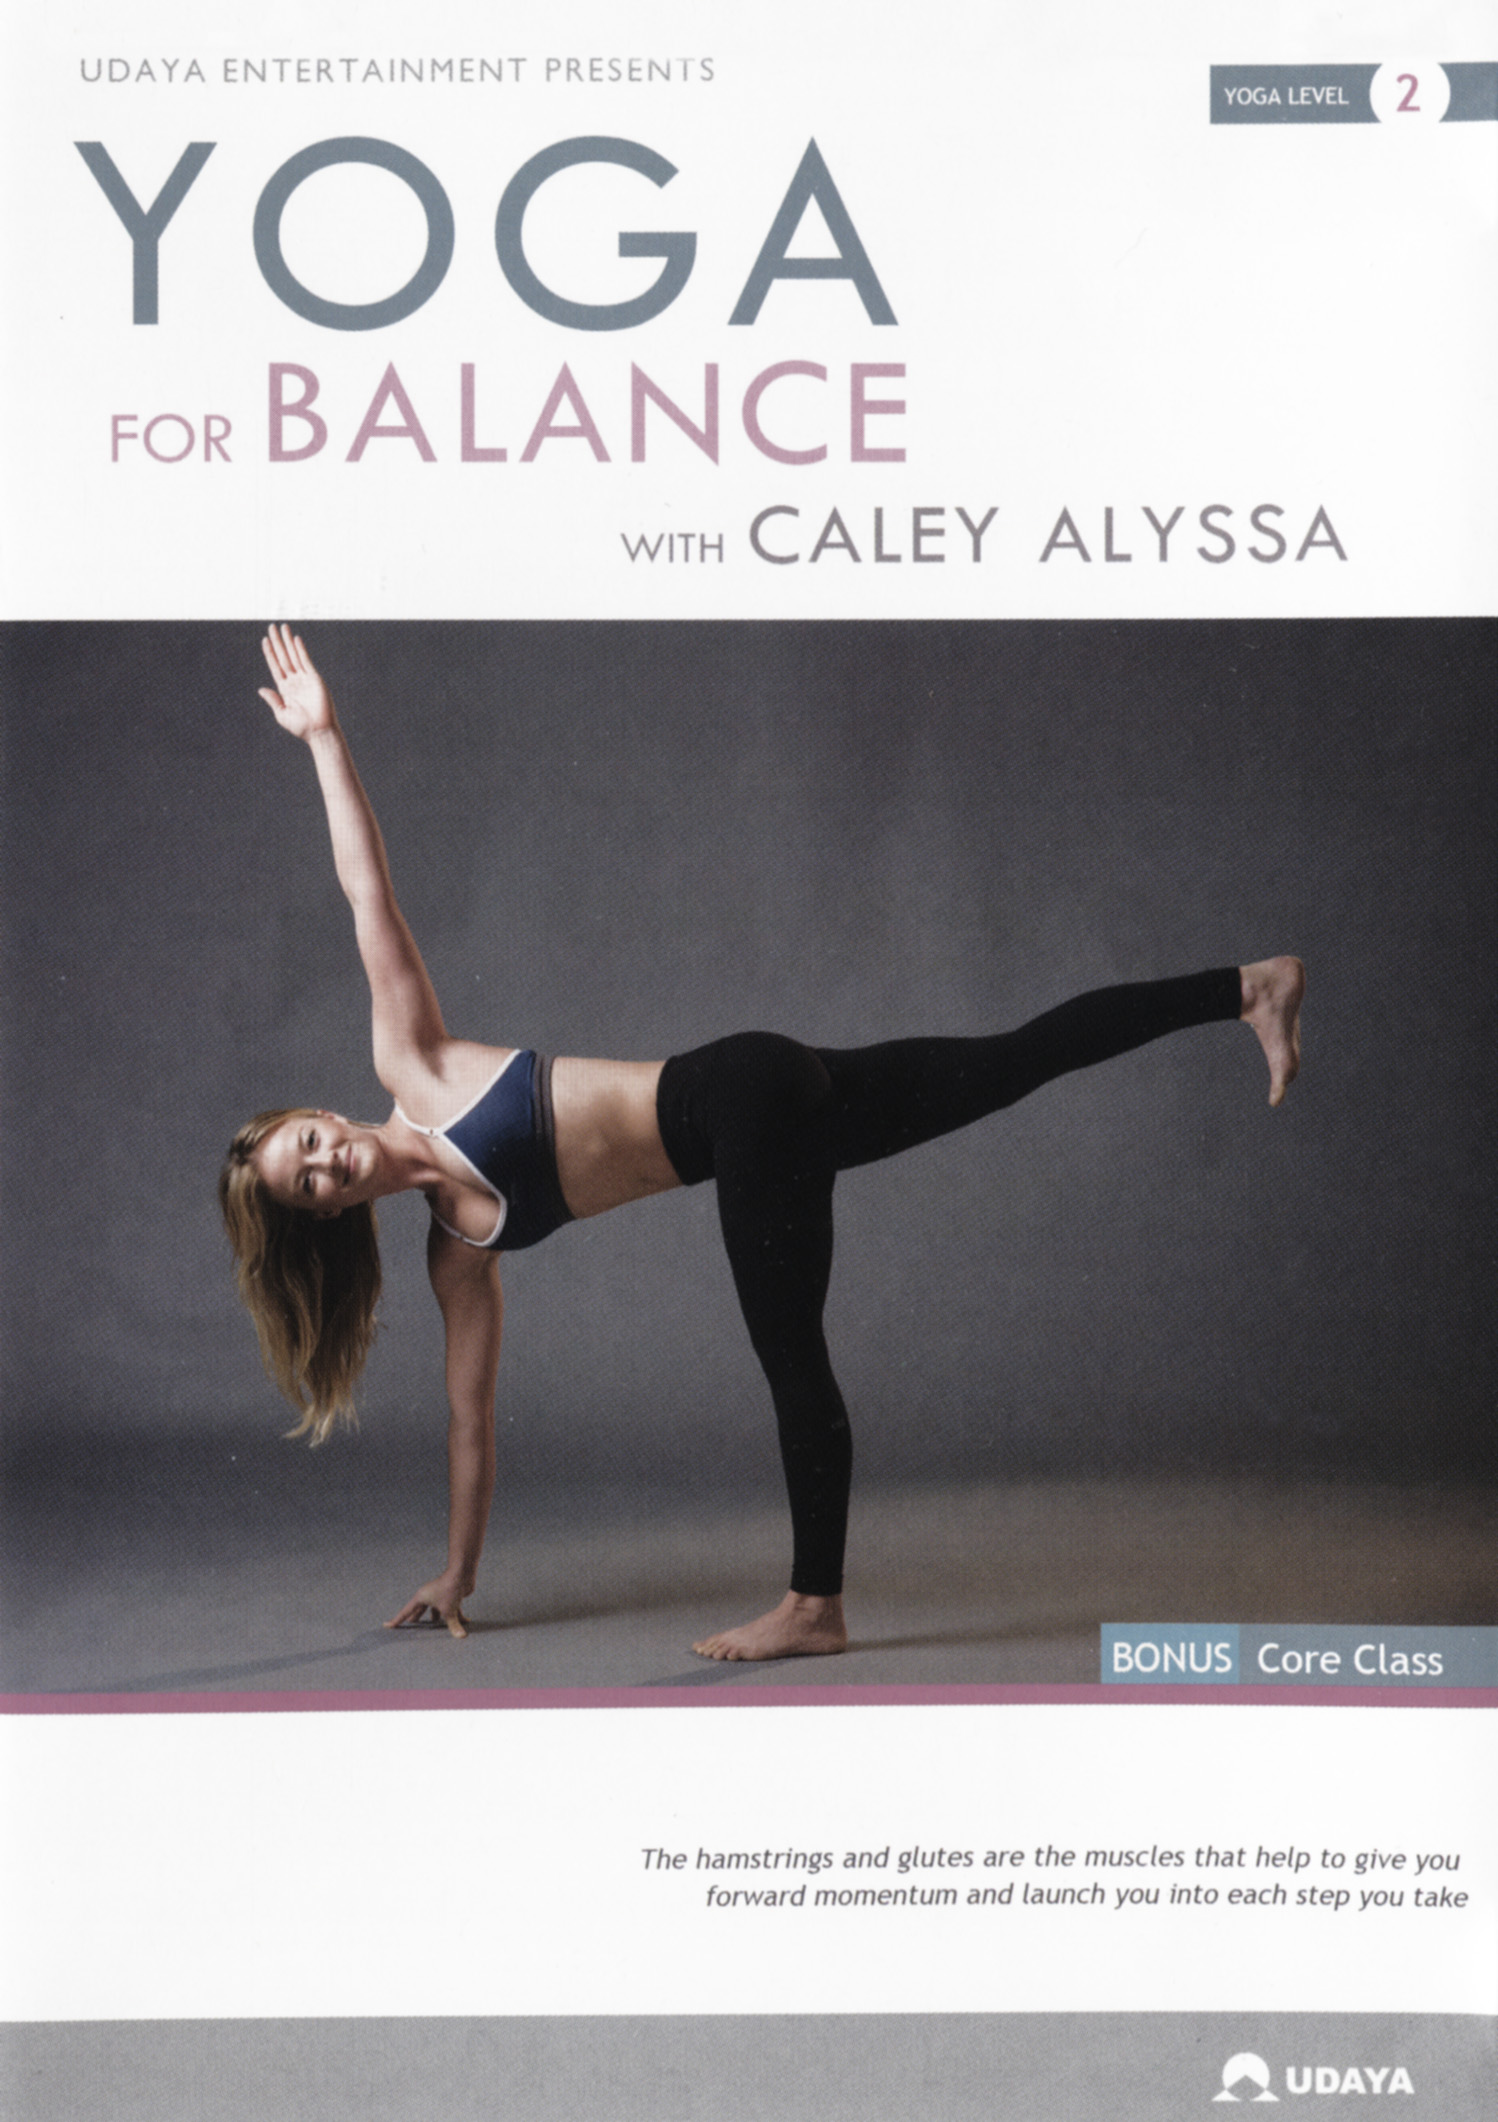 Yoga for Balance with Caley